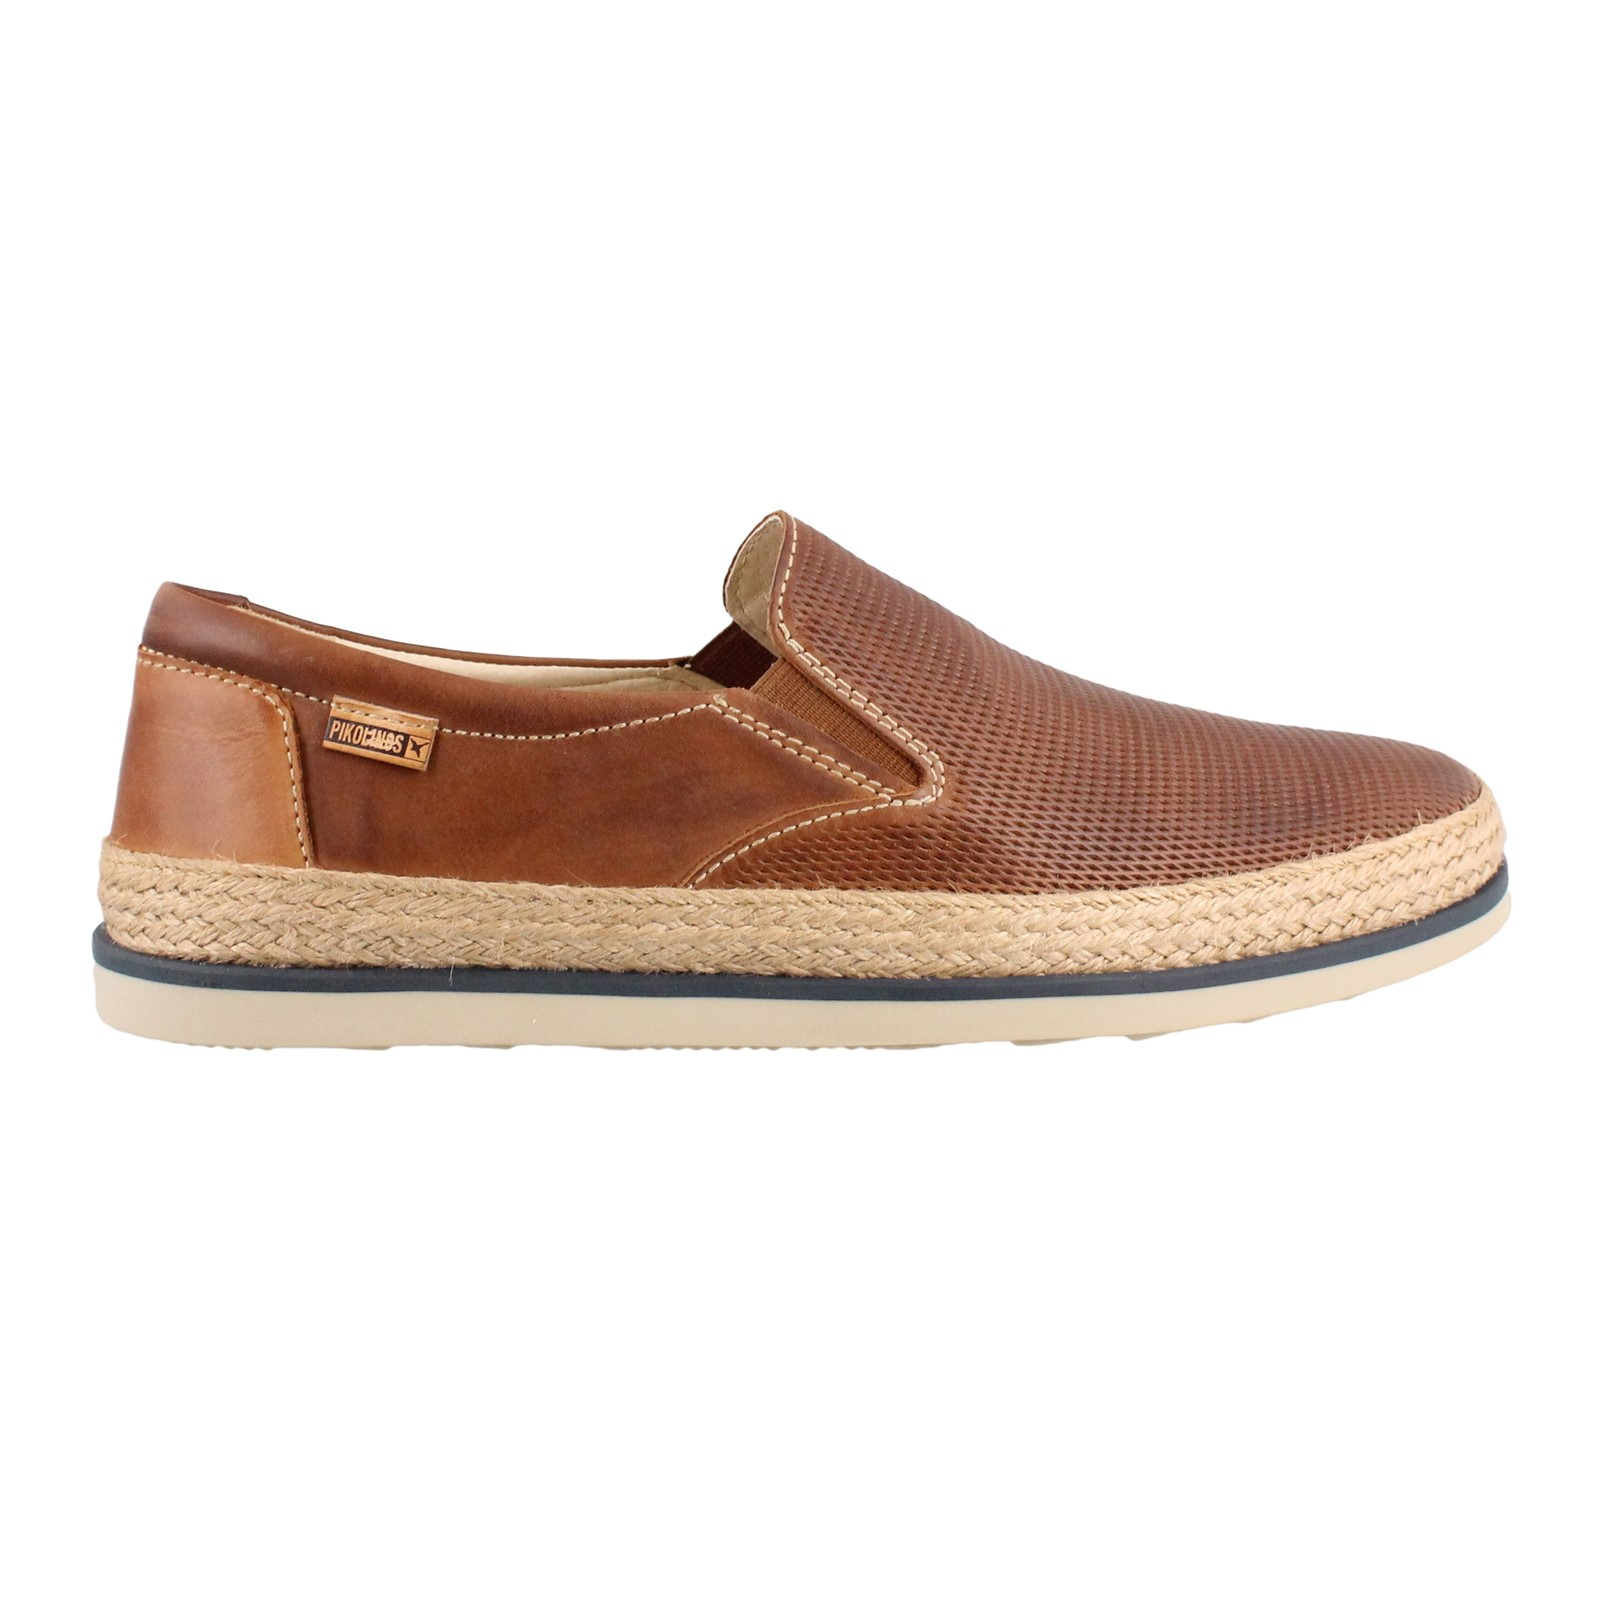 Men's Pikolinos, Linares M2G-3094 Slip on Shoes